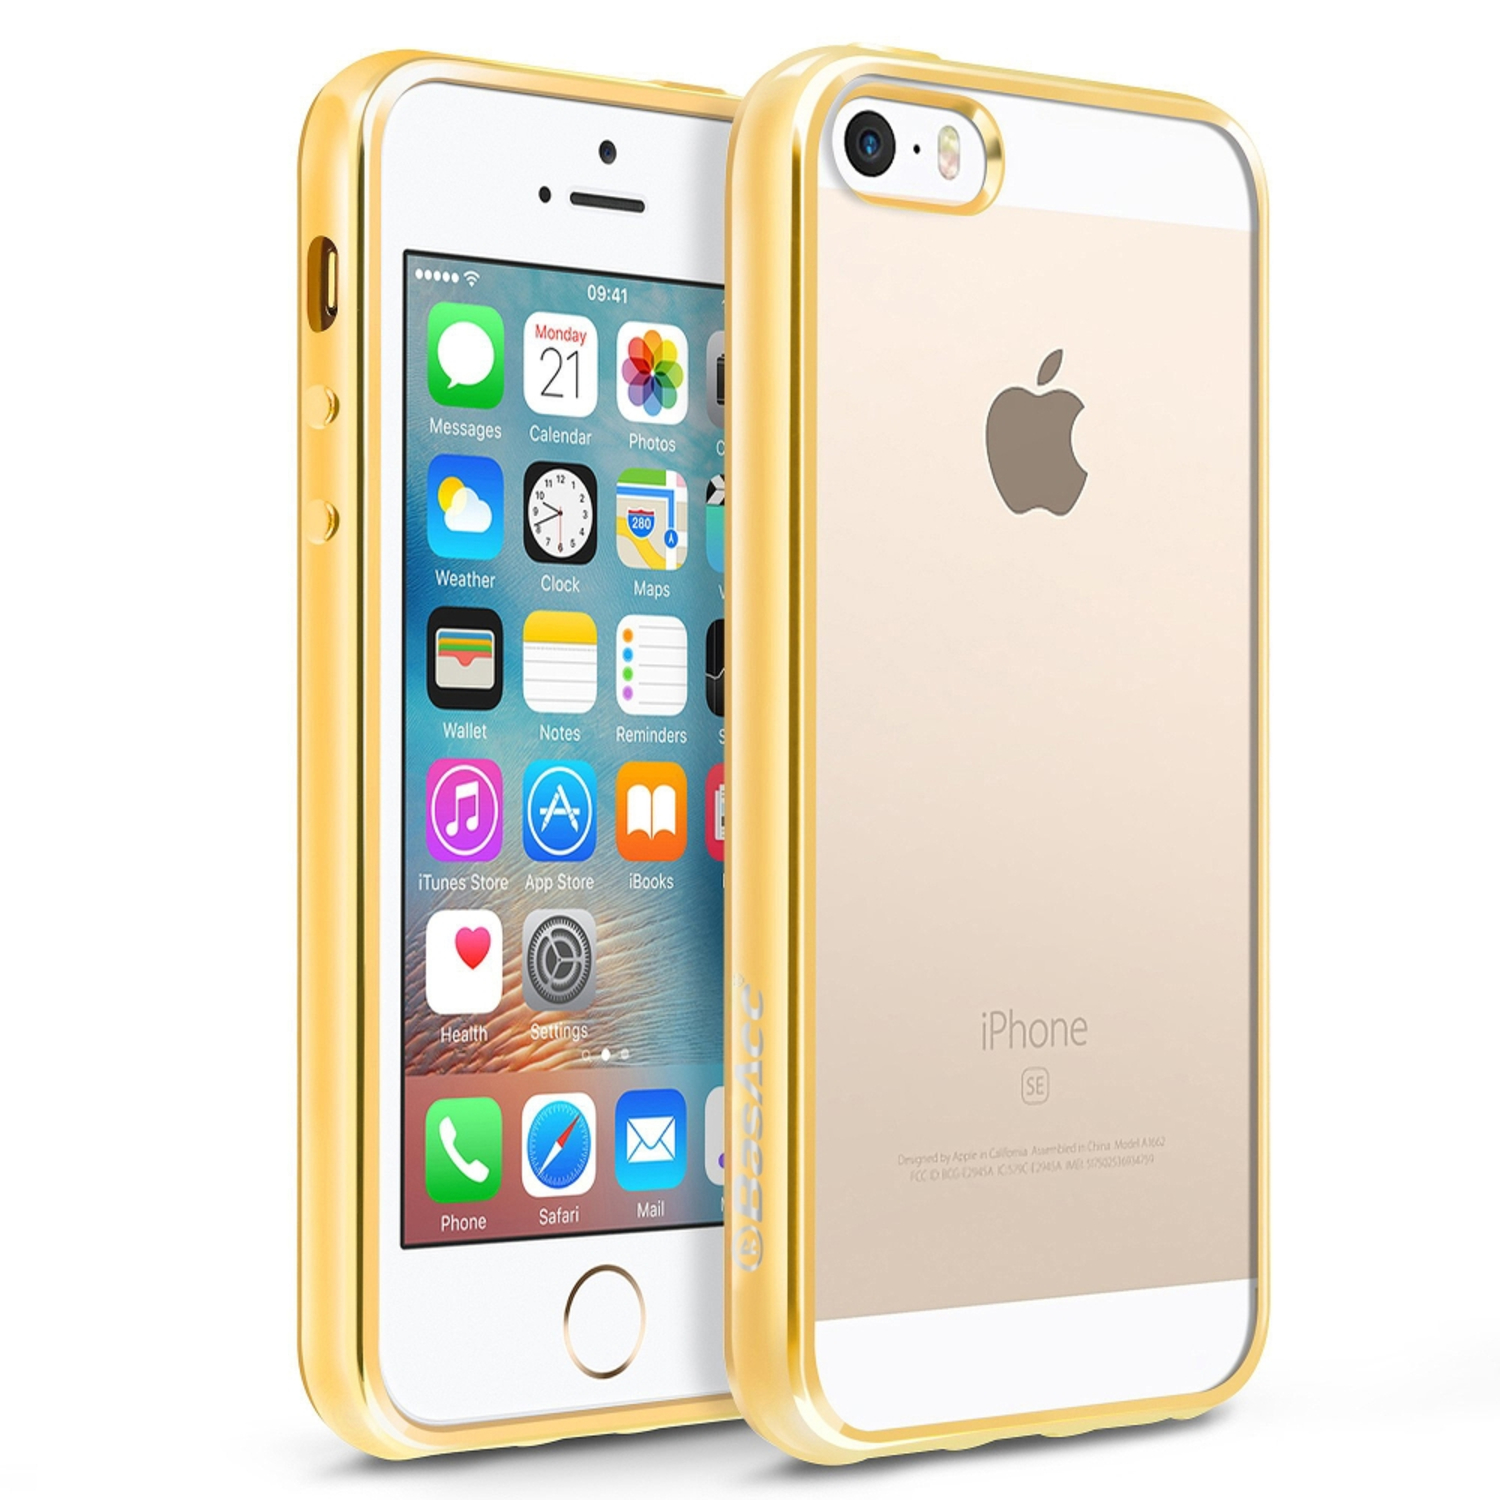 iPhone SE Case, by BasAcc Clear TPU Rubber Back Cover with Gold Chrome Edge Bumper For Apple iPhone SE / 5S / 5 (Christmas Gift Idea)